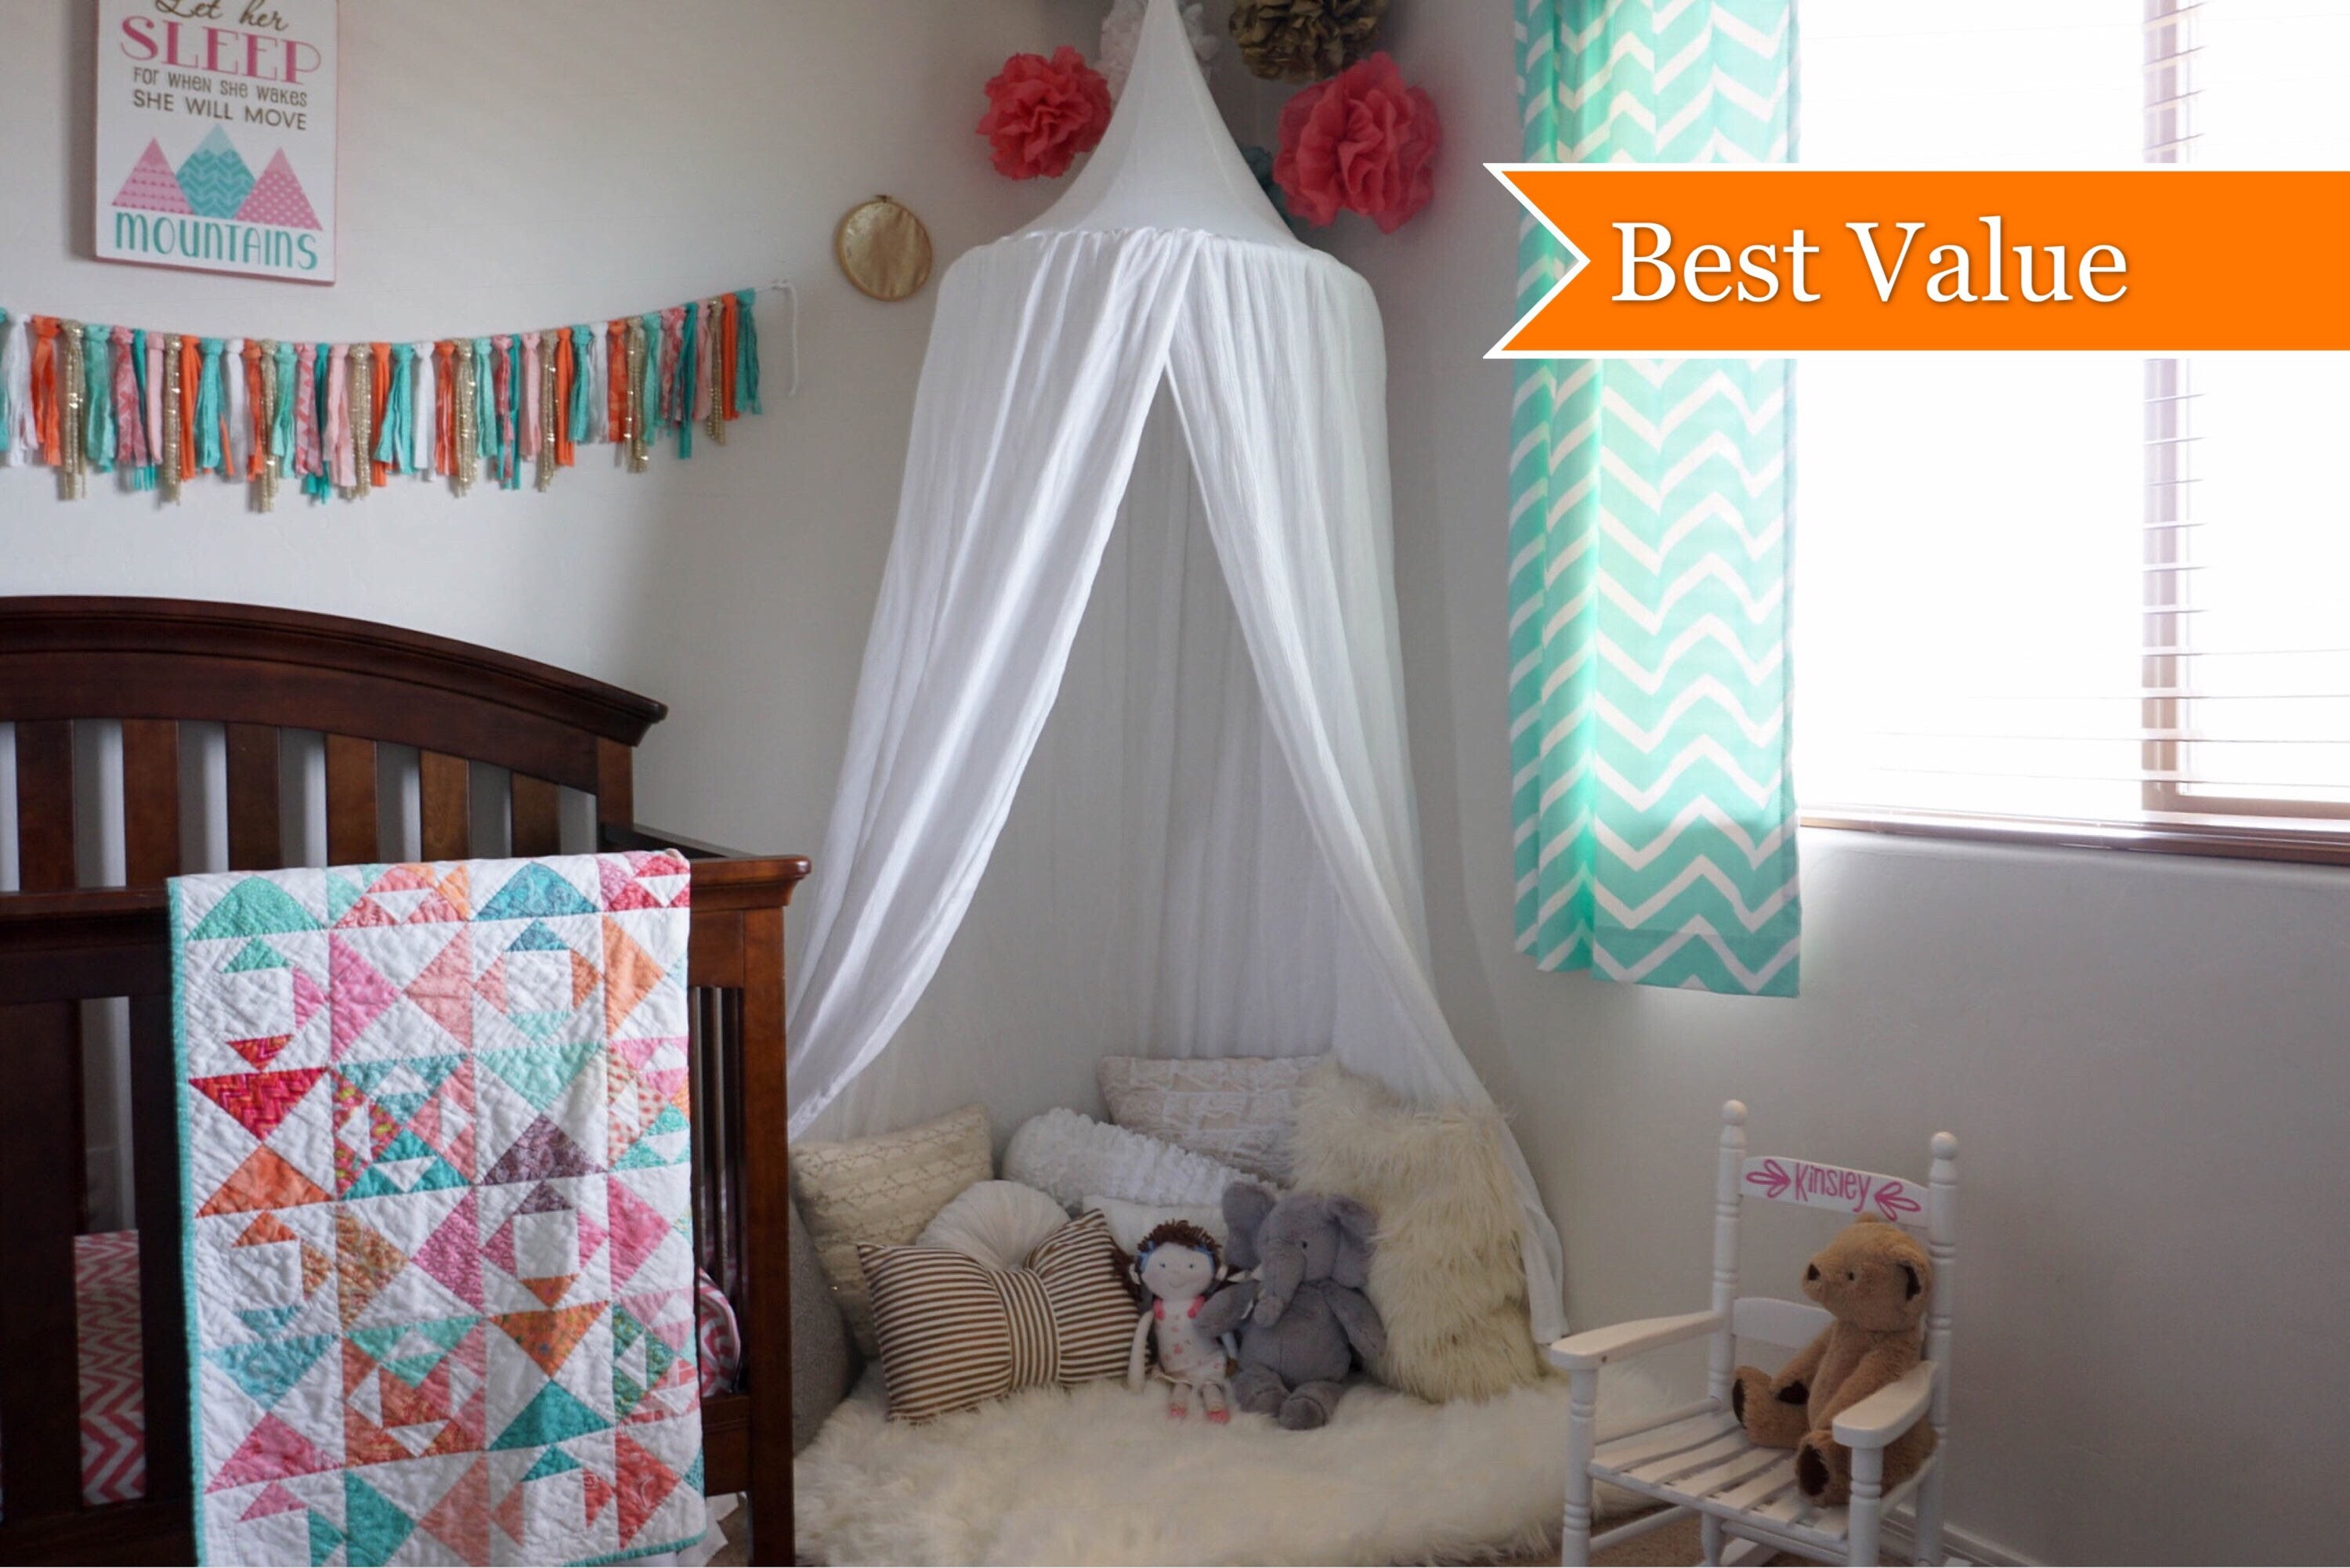 Play canopy in white cotton/ hanging tent/ reading nook canopy/hanging canopy & Play canopy in white cotton/ hanging tent/ reading nook canopy ...